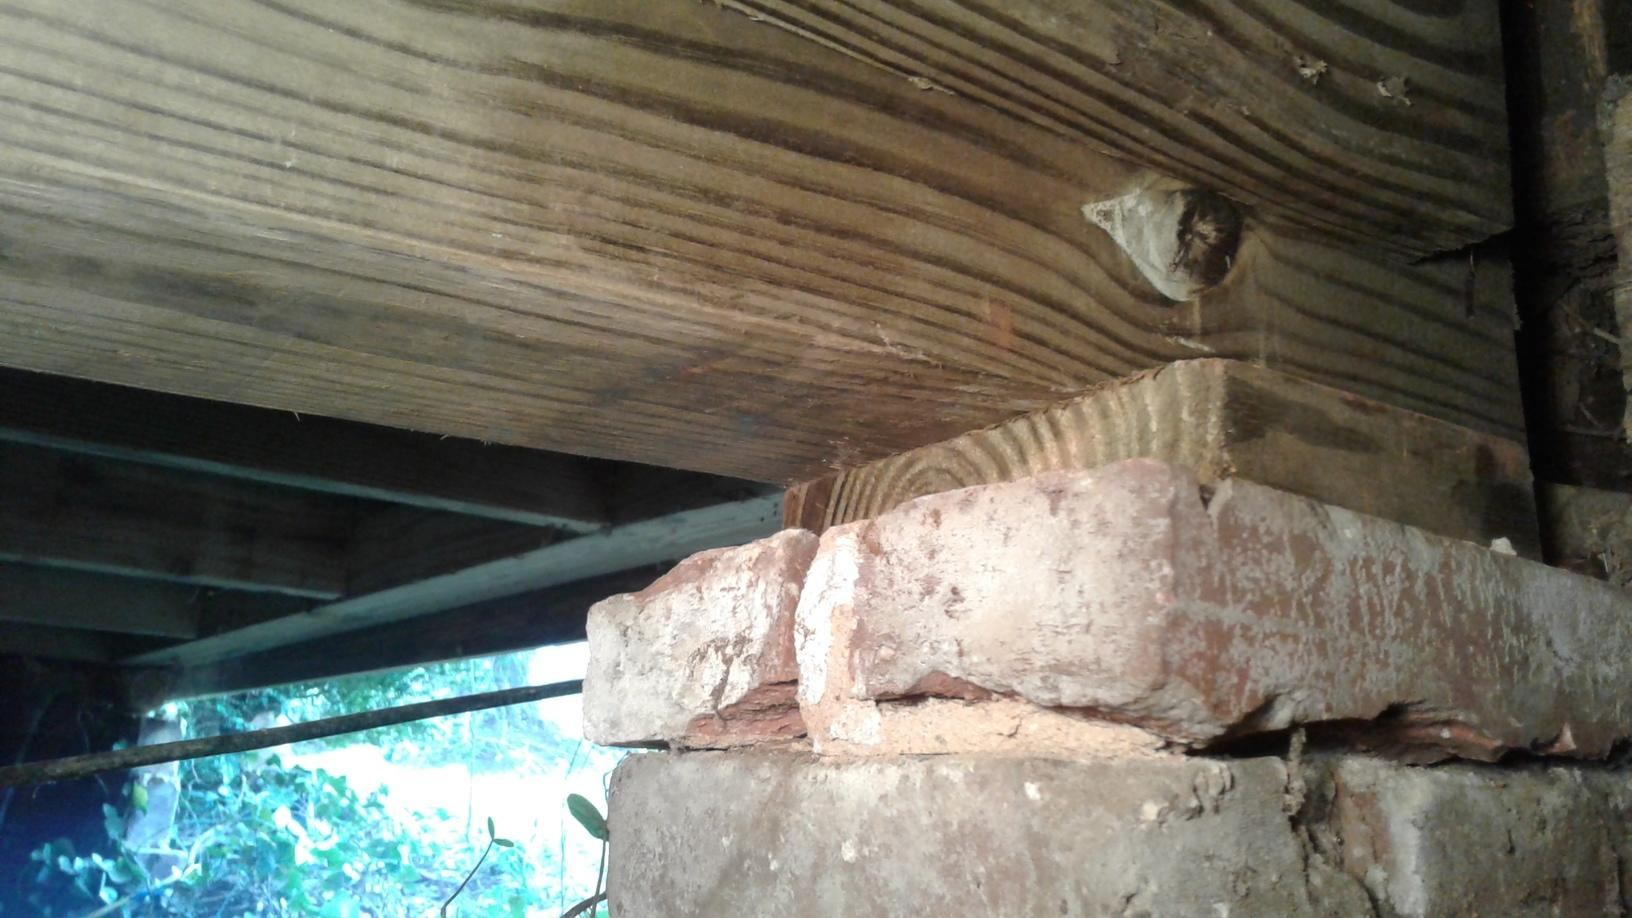 Termite Damaged Wood Replaced in Wellford, SC - After Photo